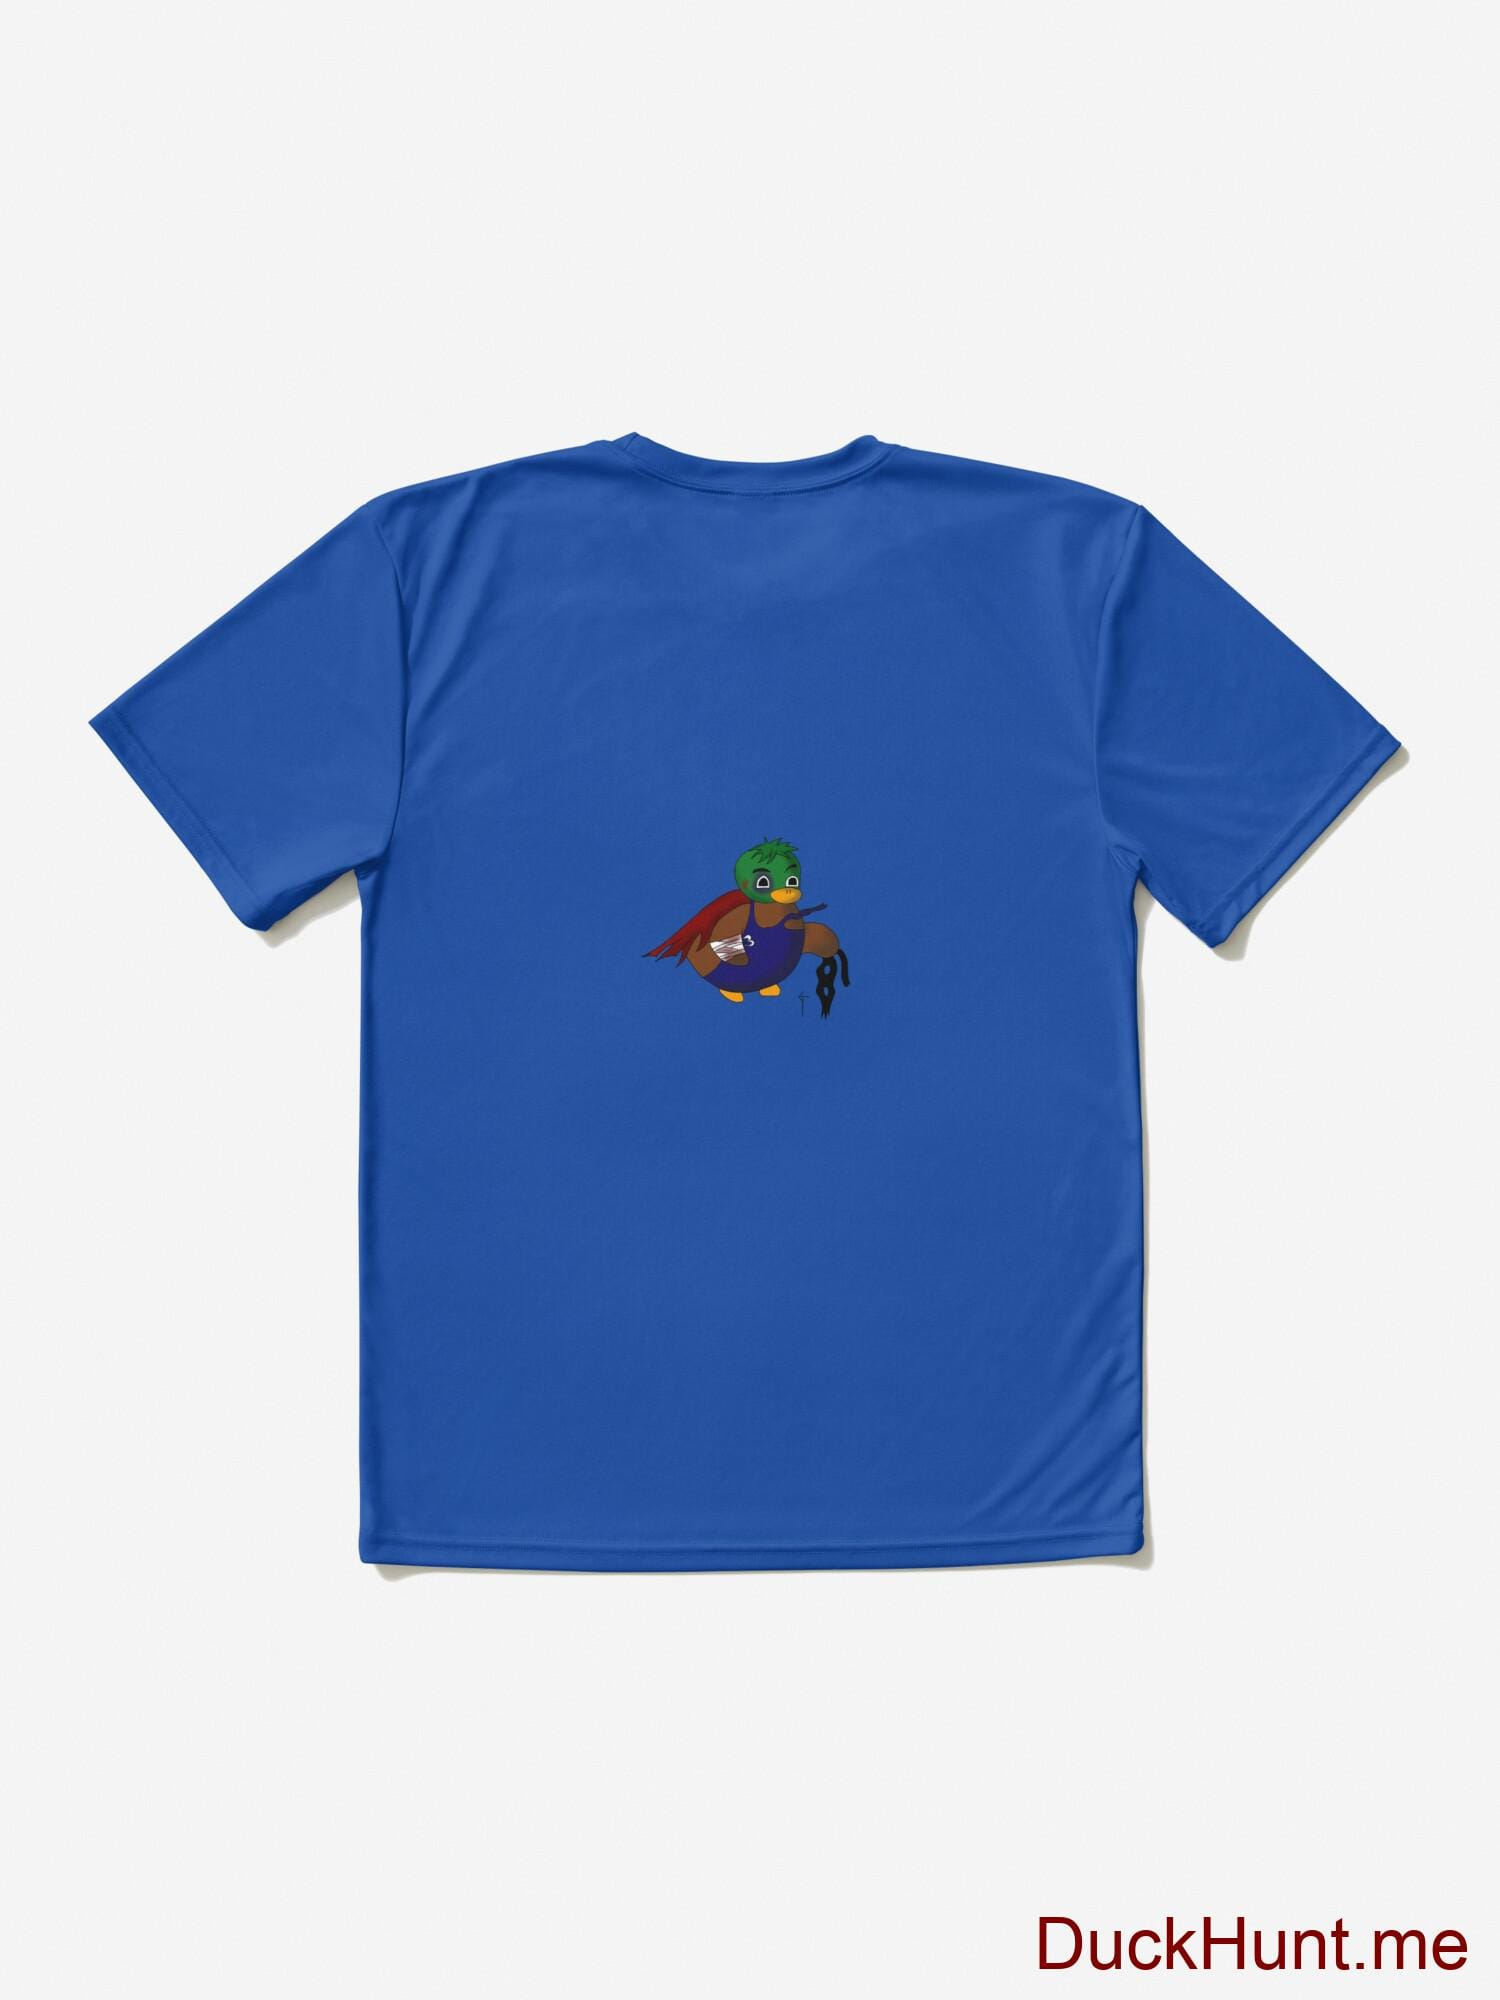 Dead DuckHunt Boss (smokeless) Royal Blue Active T-Shirt (Back printed) alternative image 1